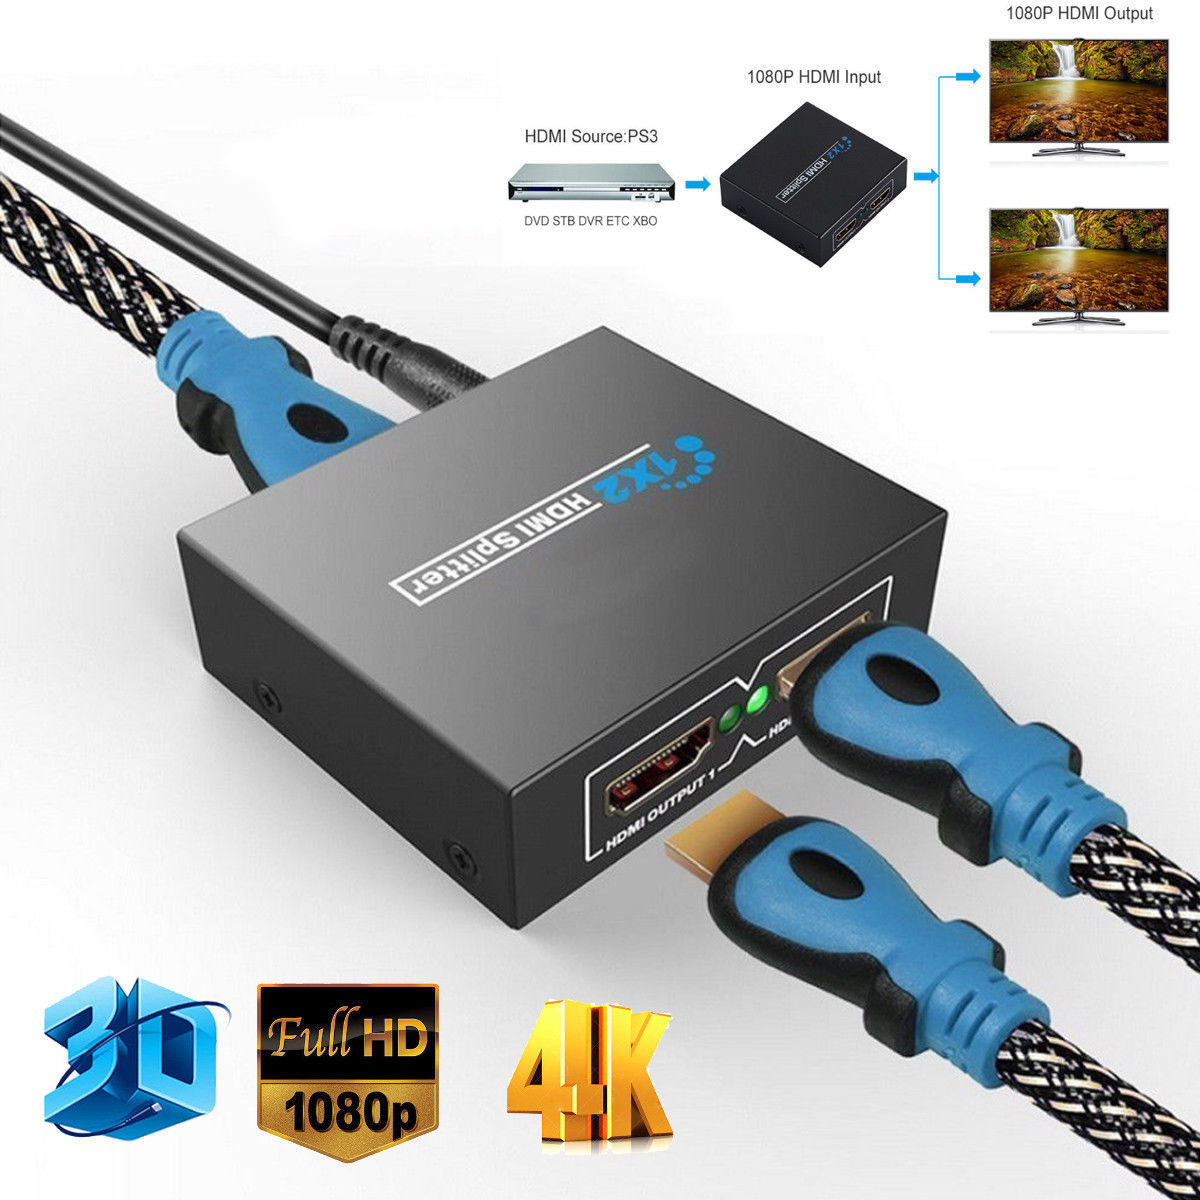 Full HD HDMI Splitter 1X2 Repeater Amplifier 3D 1080p 4K Switch Box 1 in 2 out black